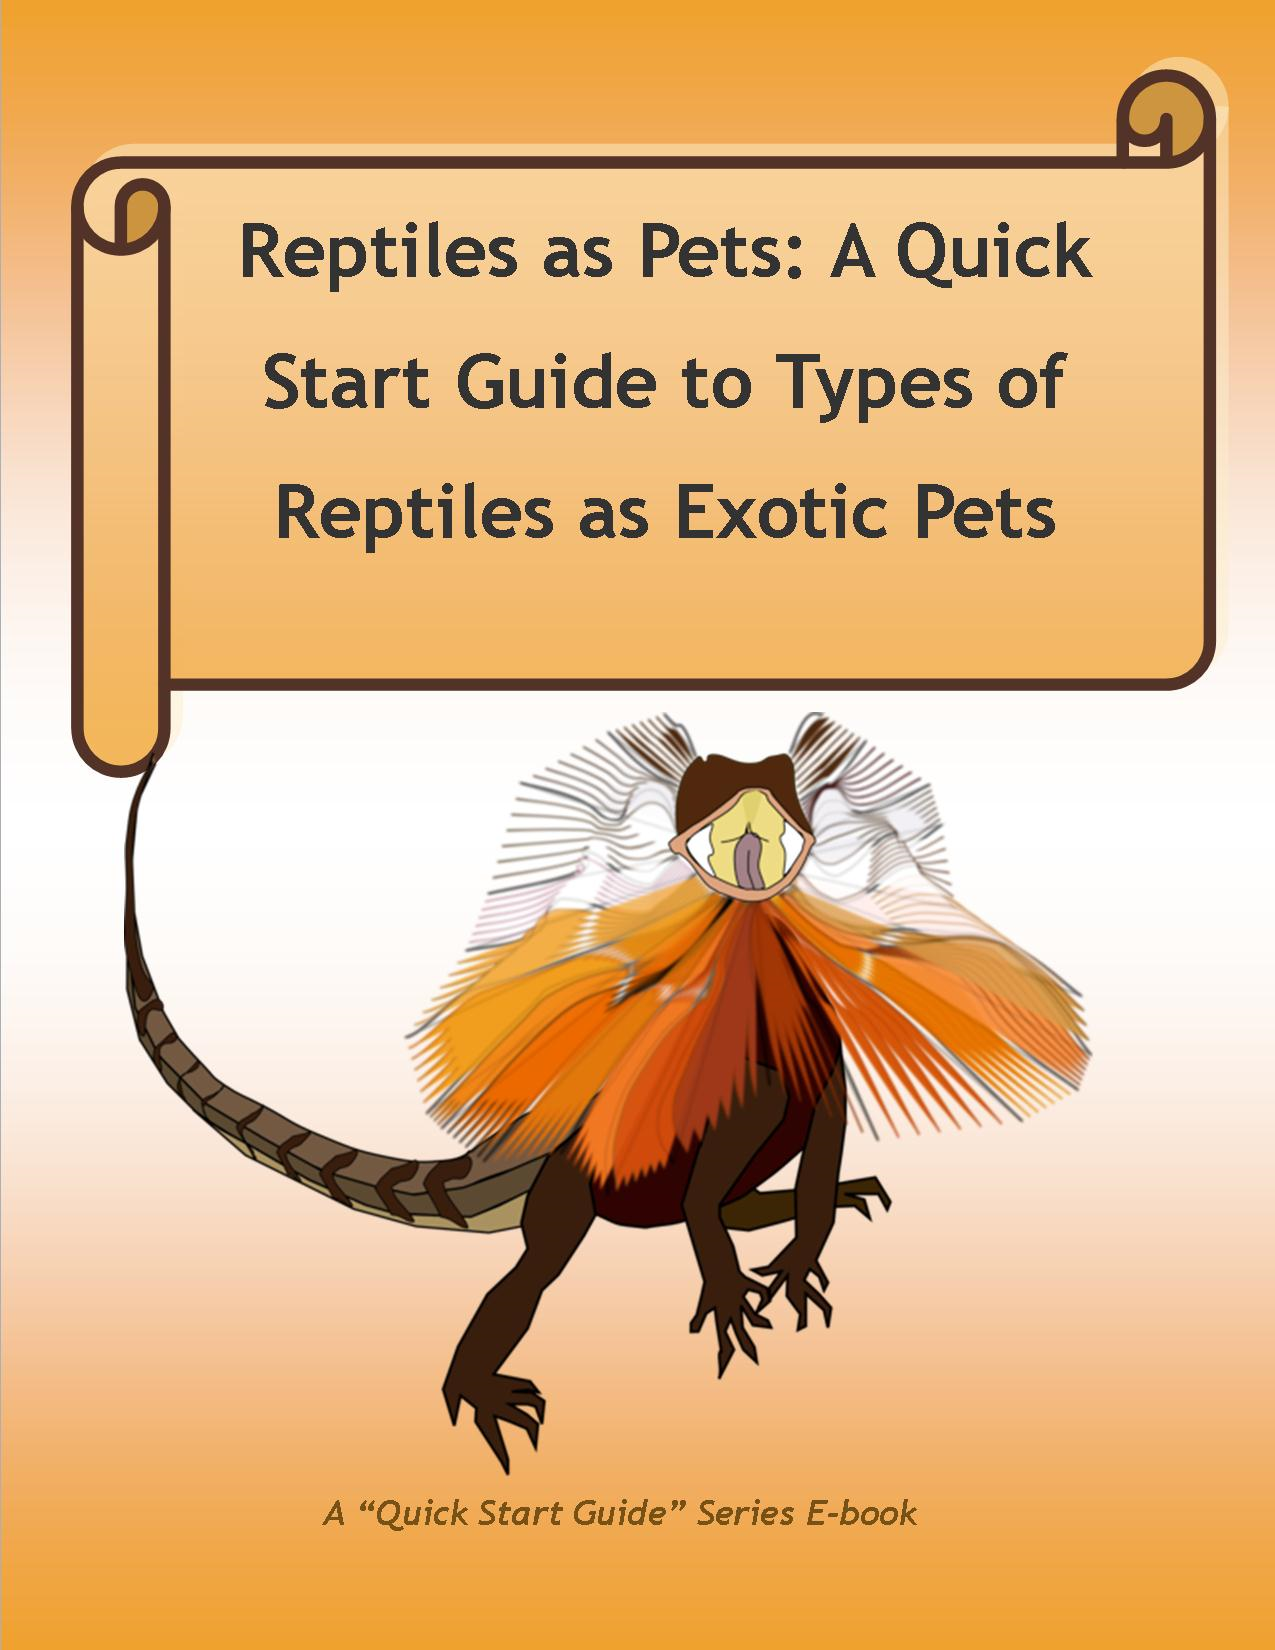 Reptiles as Pets: A Quick Start Guide to Types of Reptiles as Exotic Pets